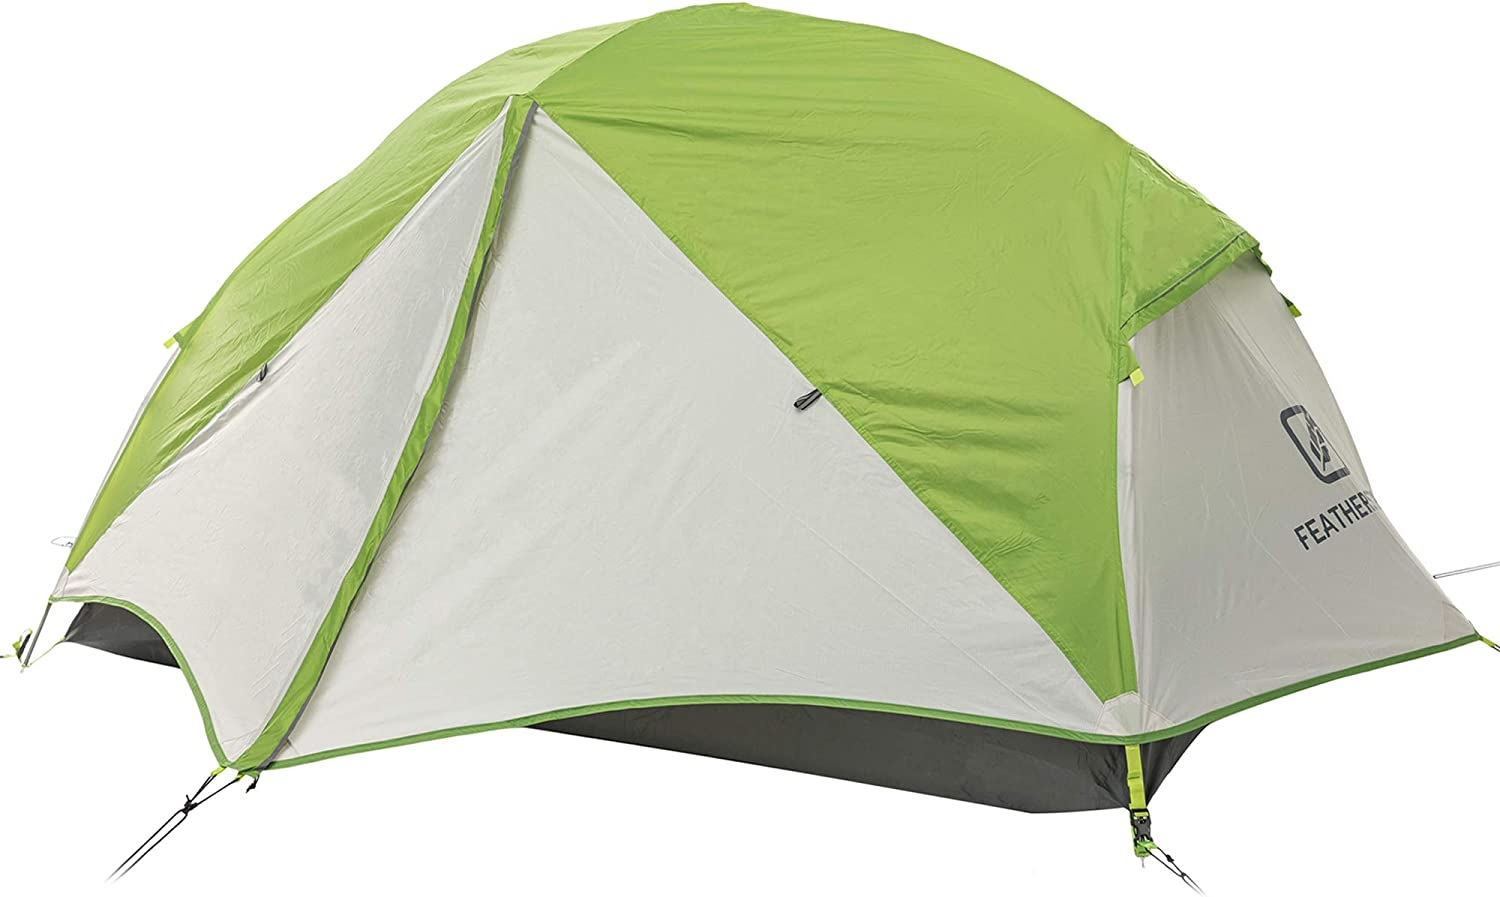 Featherstone 2 Person Backpacking Tent Lightweight for 3-Season Outdoor Camping, Hiking, and Biking - Includes Footprint, Waterproof, Packs Light and Compact